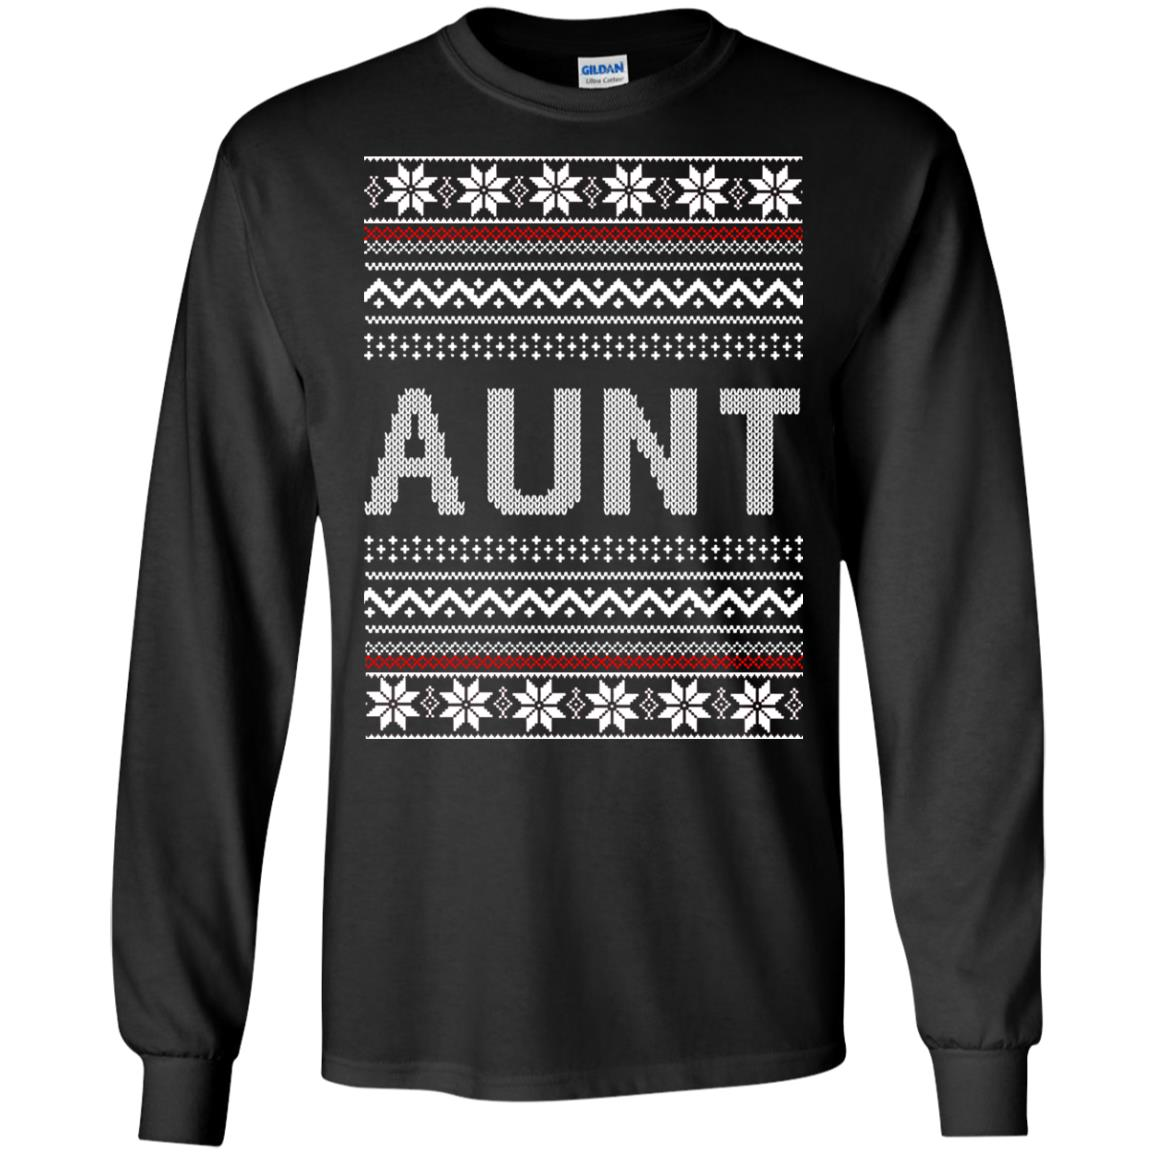 image 4611 - Aunt Ugly Christmas Sweater, Shirt, Hoodie